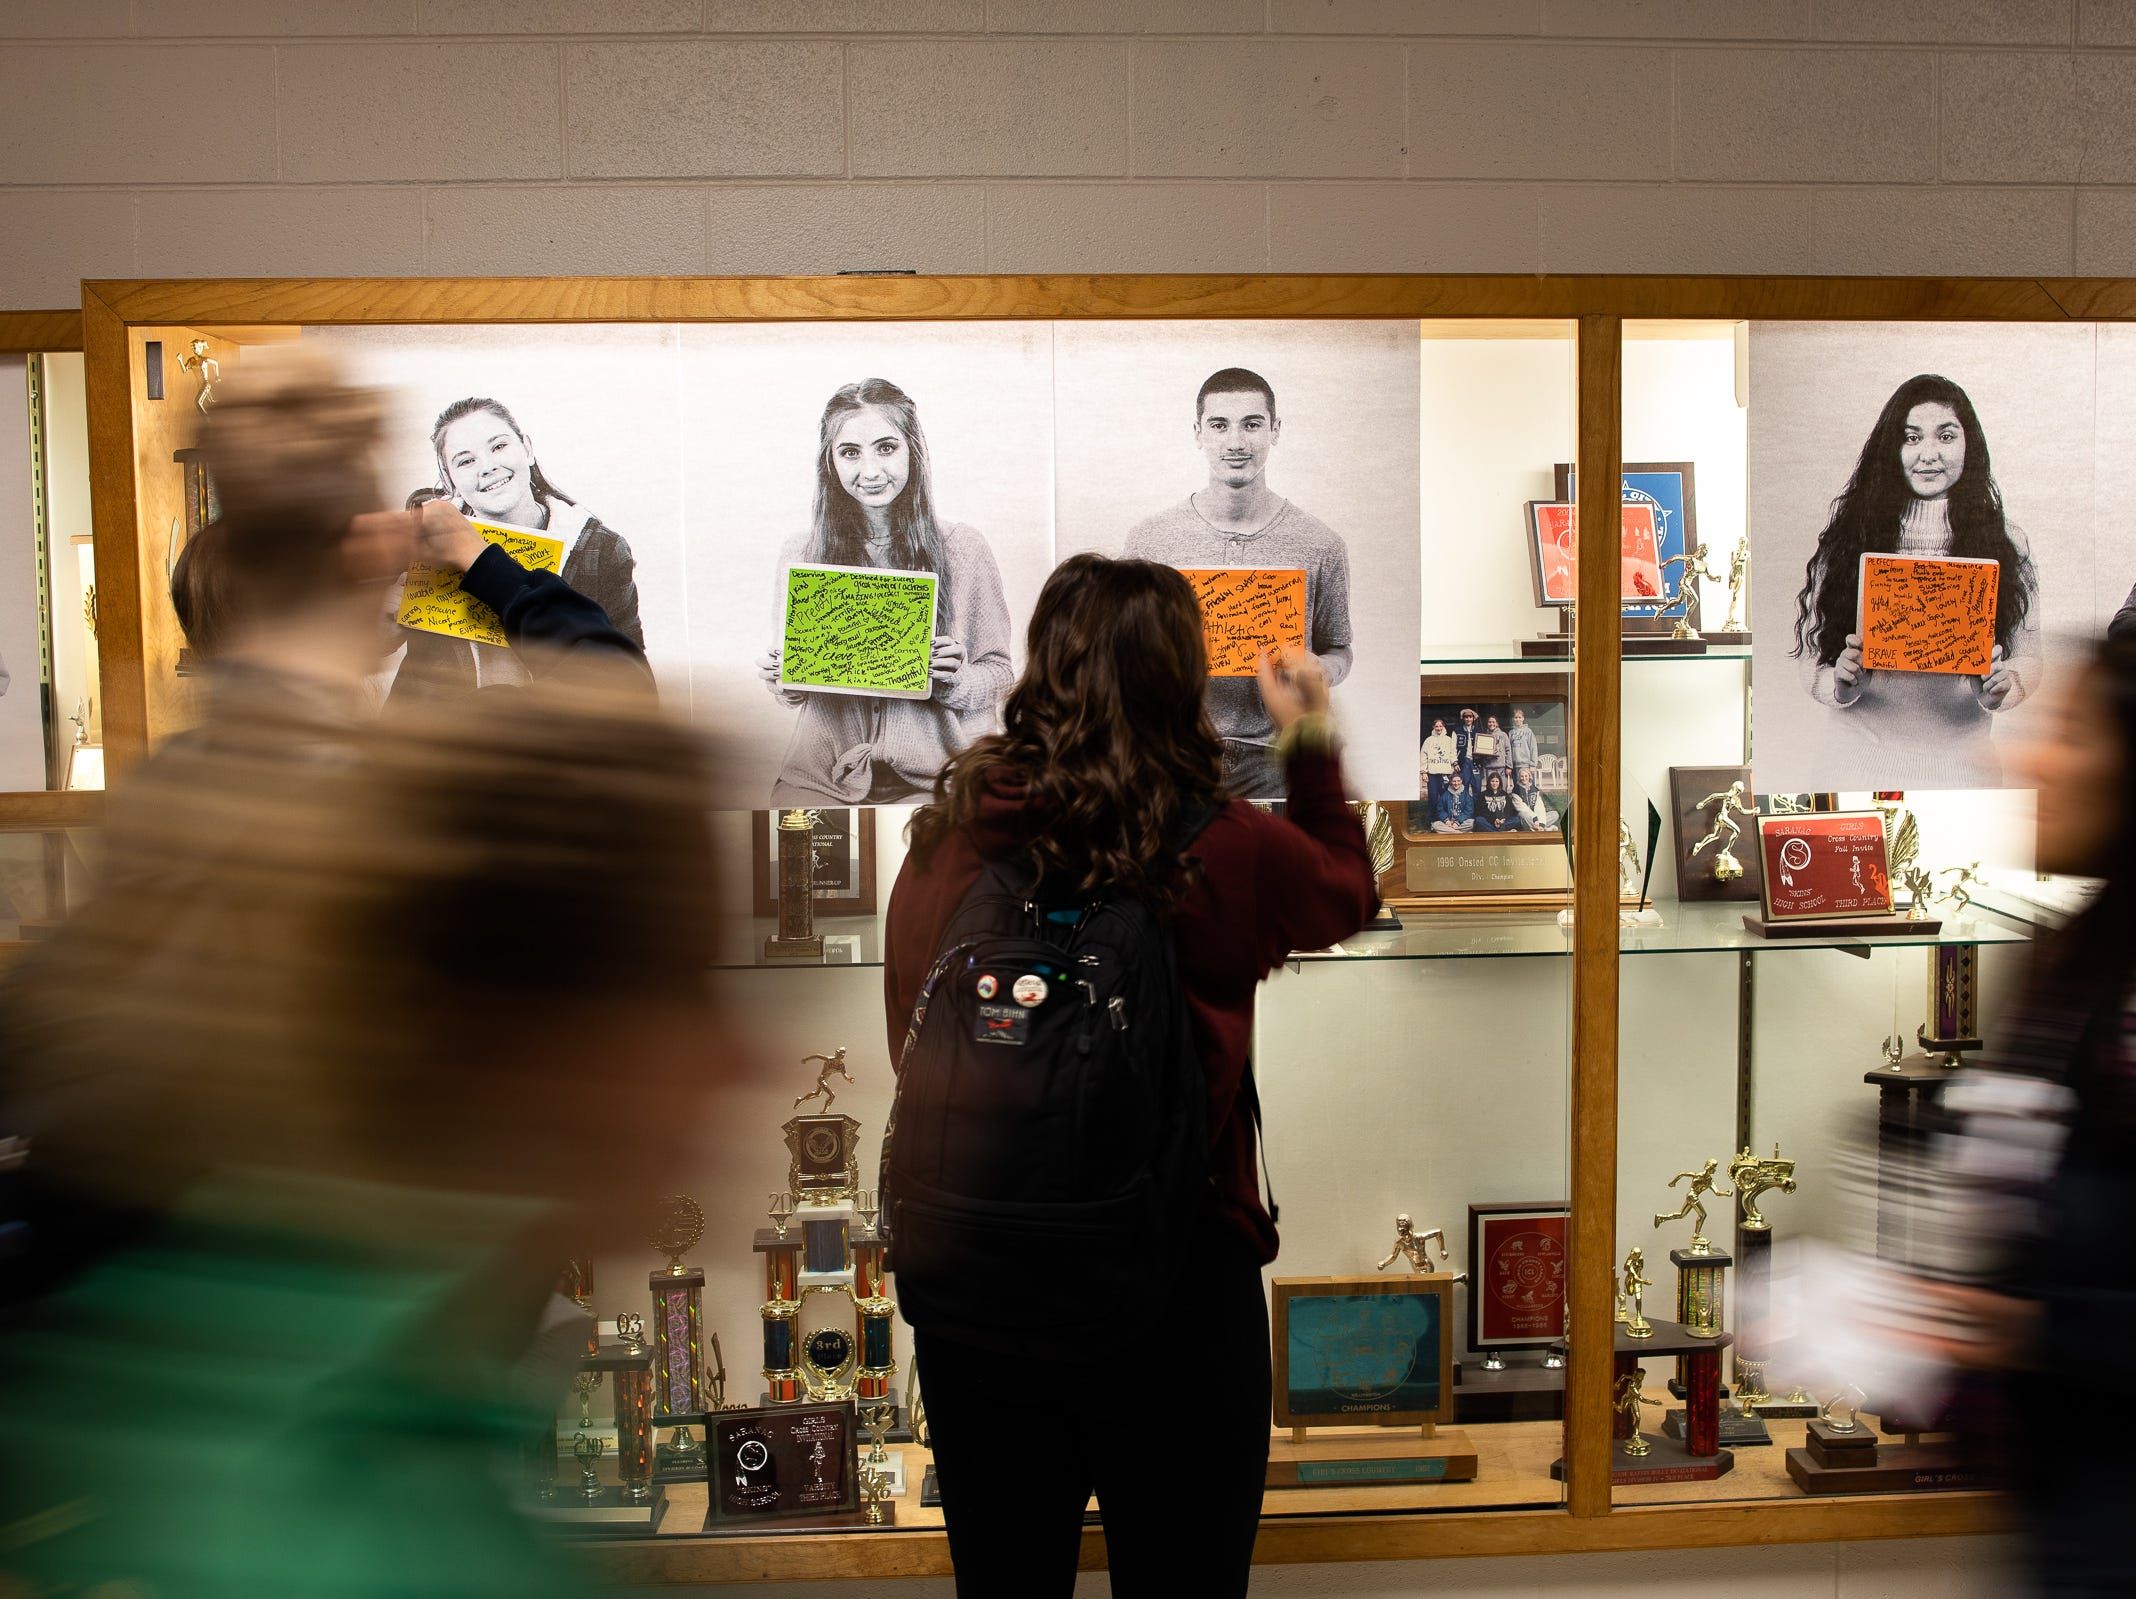 Bath High School students roam the halls, writing positive words and phrases on the photos of friends and fellow students.